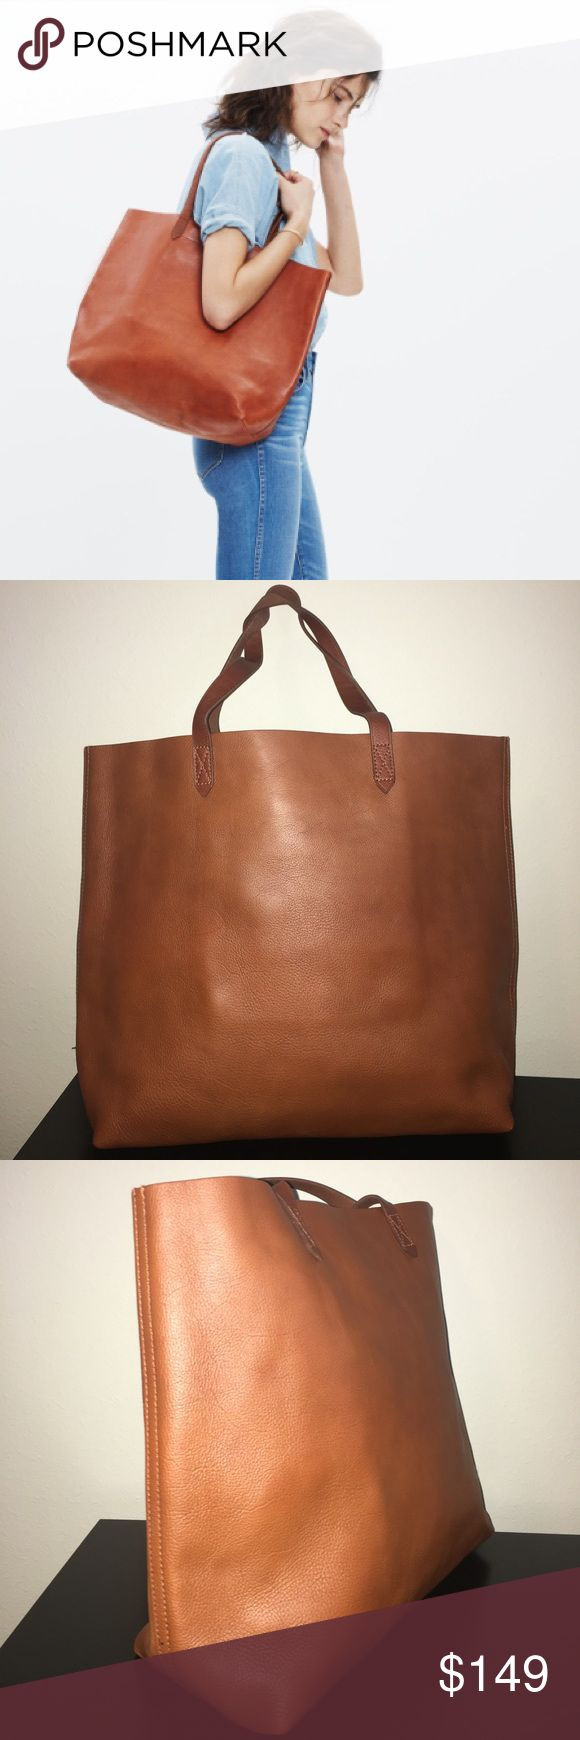 """New Madewell Transport English Saddle Tote Bag What goes into Madewell's signature tote? 2 pieces of fine leather are used for the body. 8 inch strap drop: long enough to sling over your shoulder, but short enough to hold as a top handle.   Made of vegetable-tanned leather that burnishes with wear into a beautiful patina. Please note this : As it is made of a natural material, each bag varies slightly in texture, markings and color. Interior zip pocket. Unlined. 8 1/4"""" handle drop. 14""""H x…"""